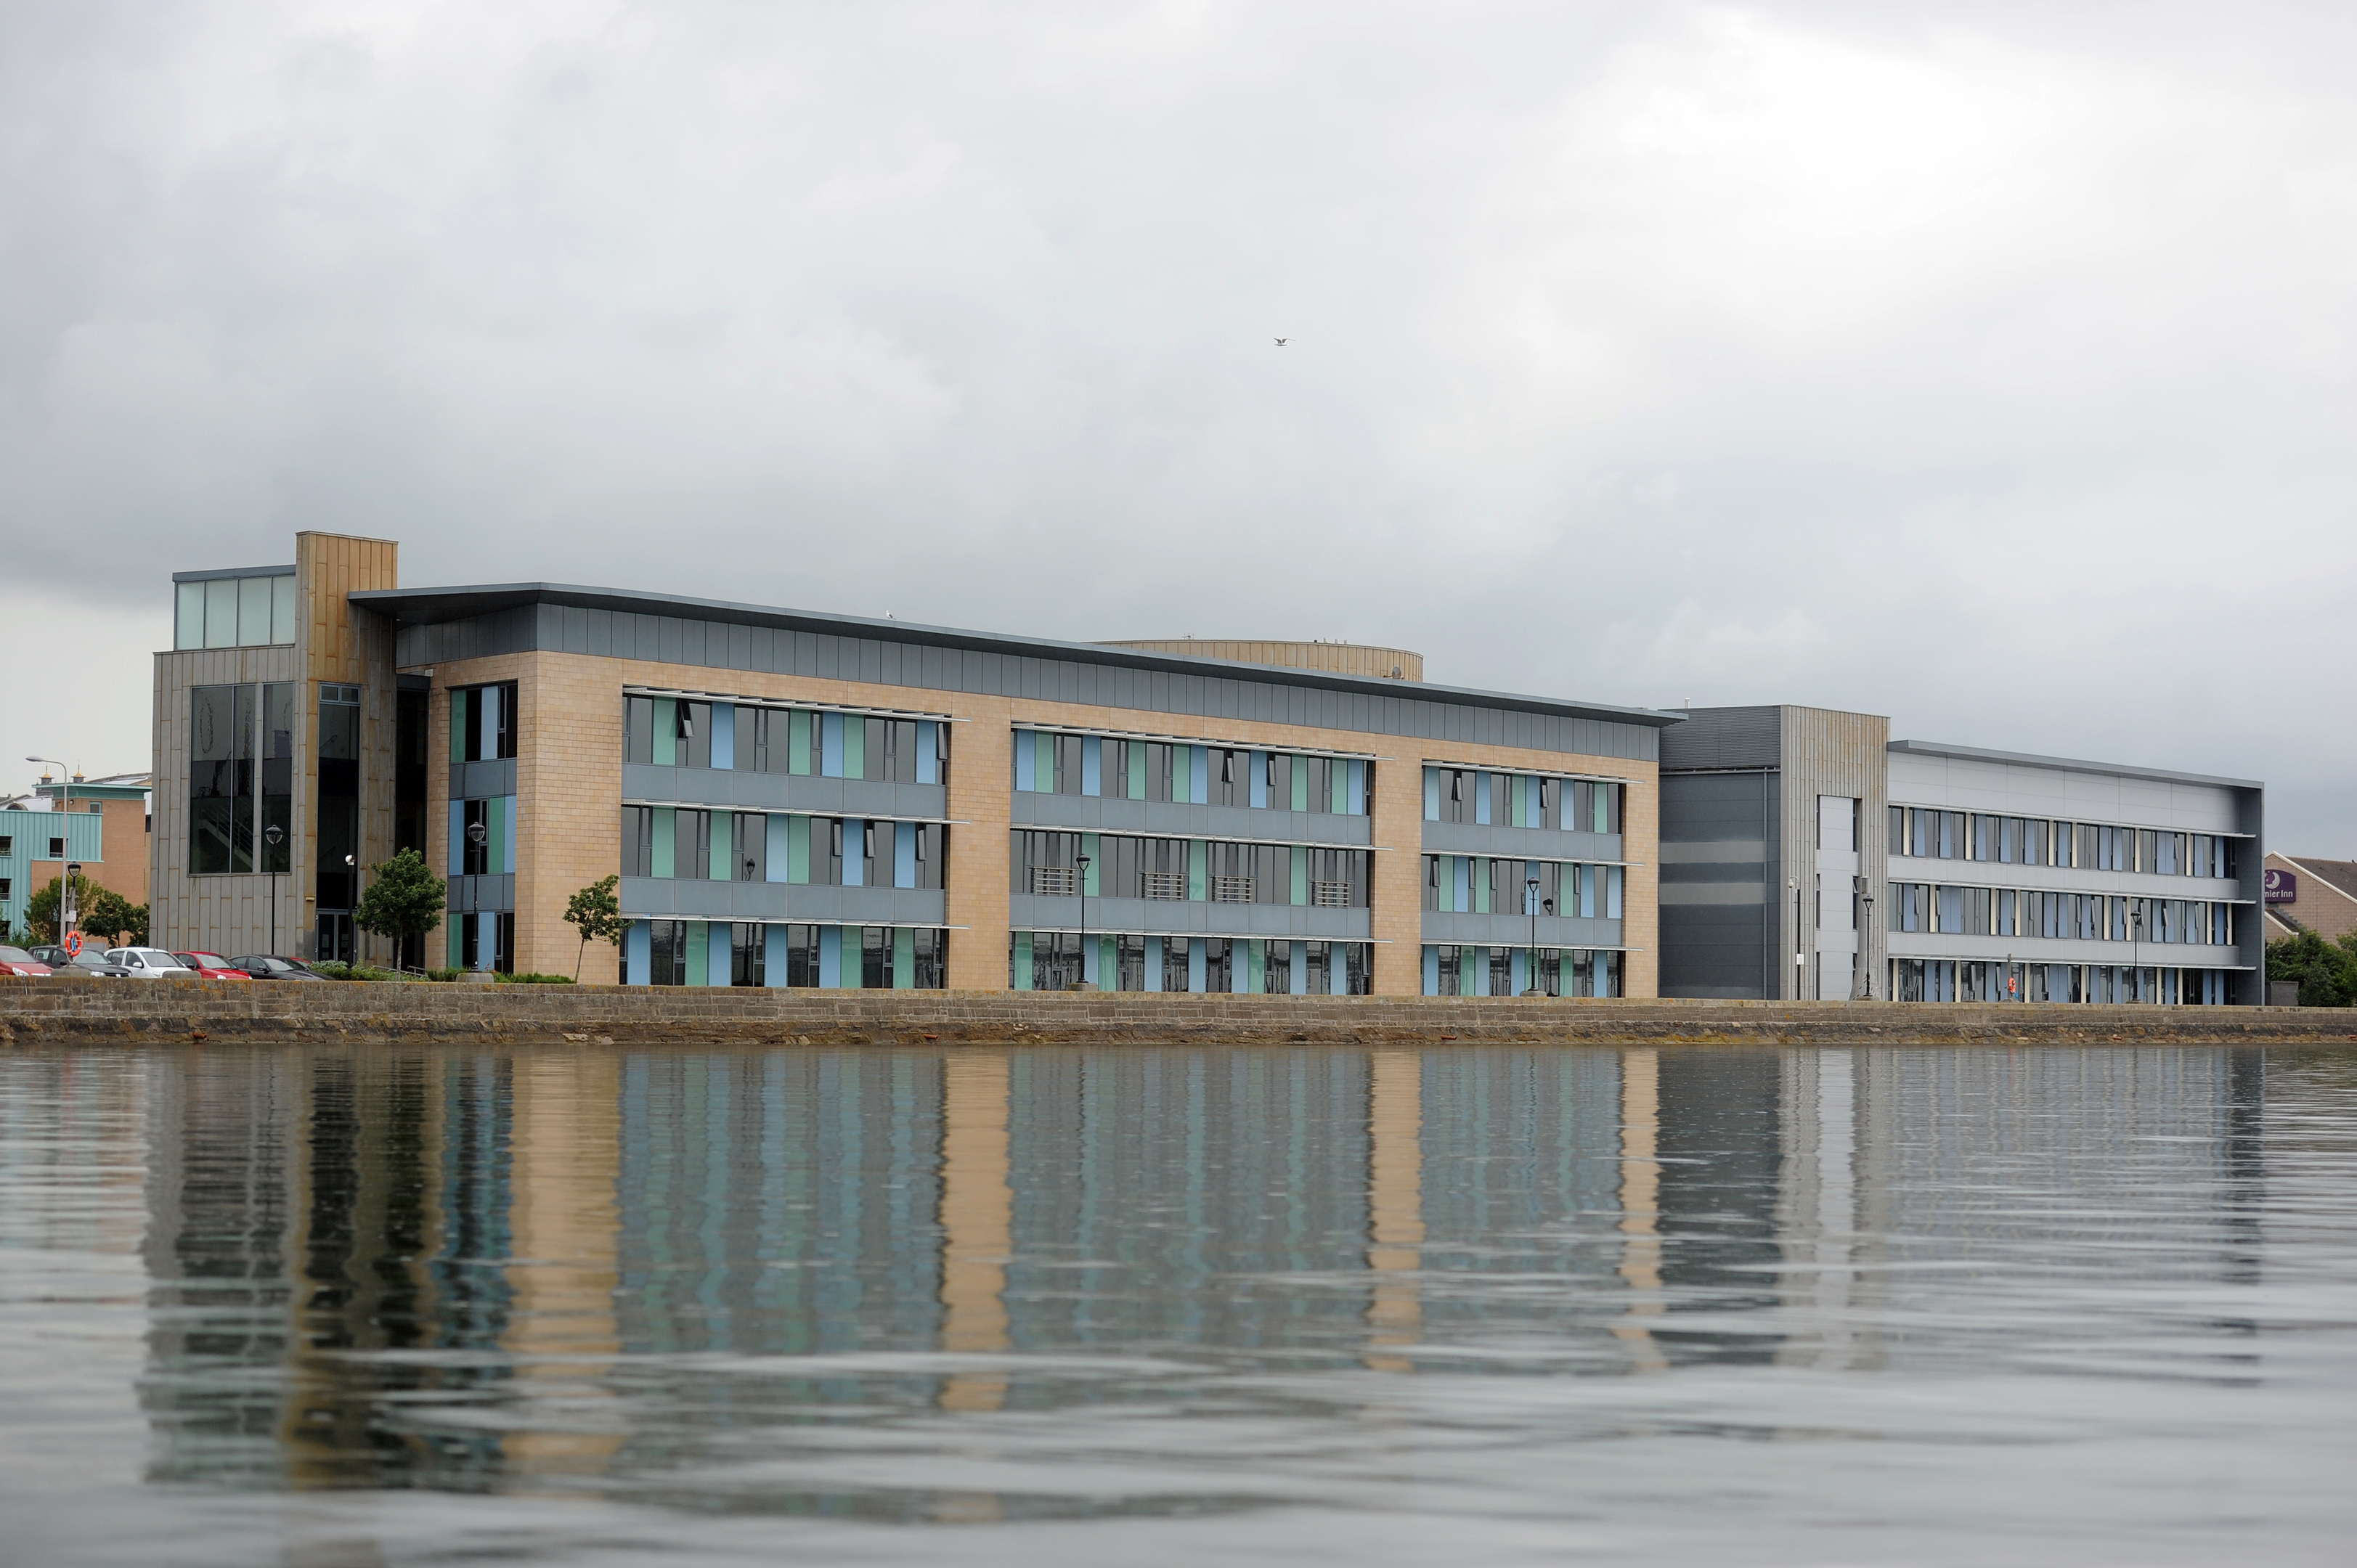 The Care Inspectorate offices in Dundee.